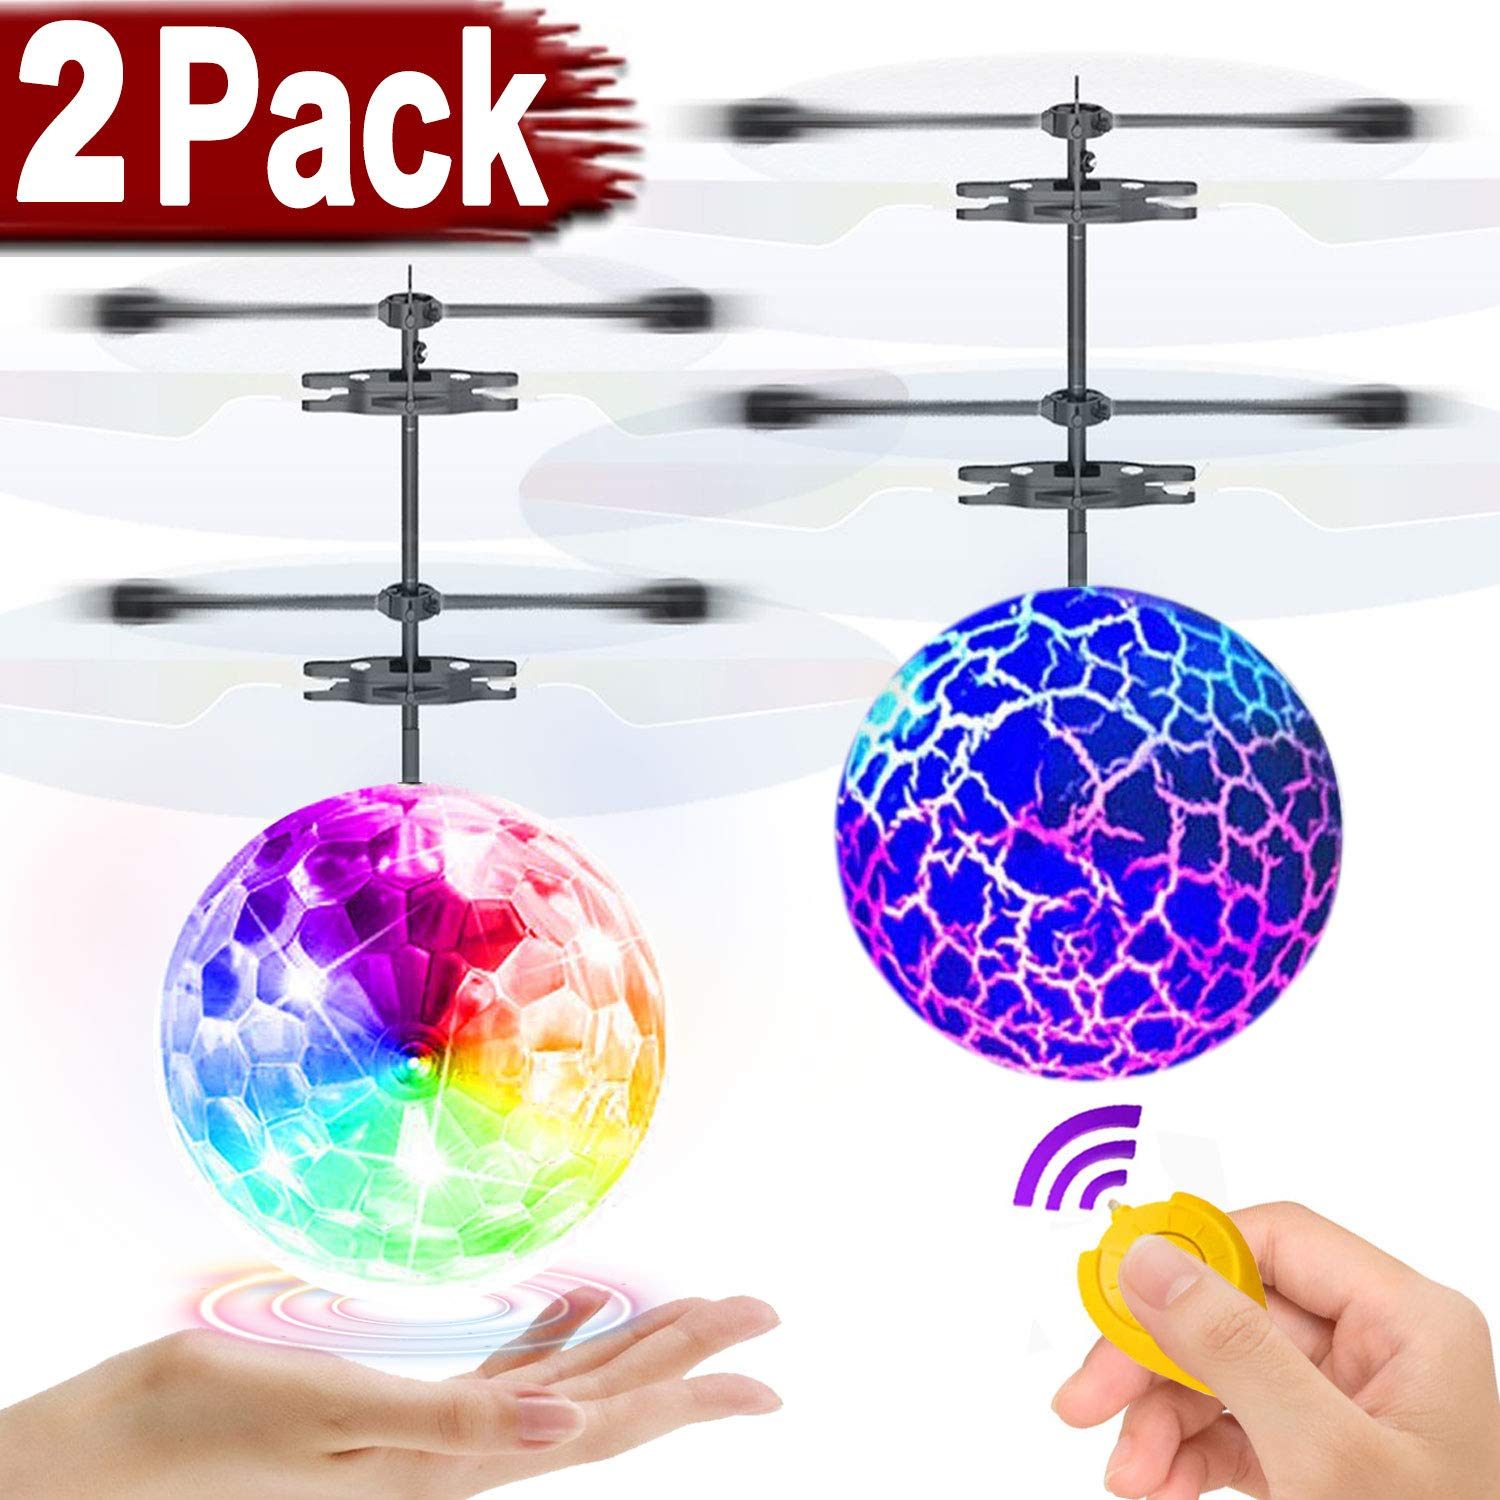 2 Pack RC Flying Ball Glow Flying Toys for Kids Boys Girls Birthday Gifts, Mini Drones Hand Controll Helicopter with 2 Remote Controller Quadcopter Light Up Ball Toys Indoor Outdoor Multiplayer Games by Camlinbo